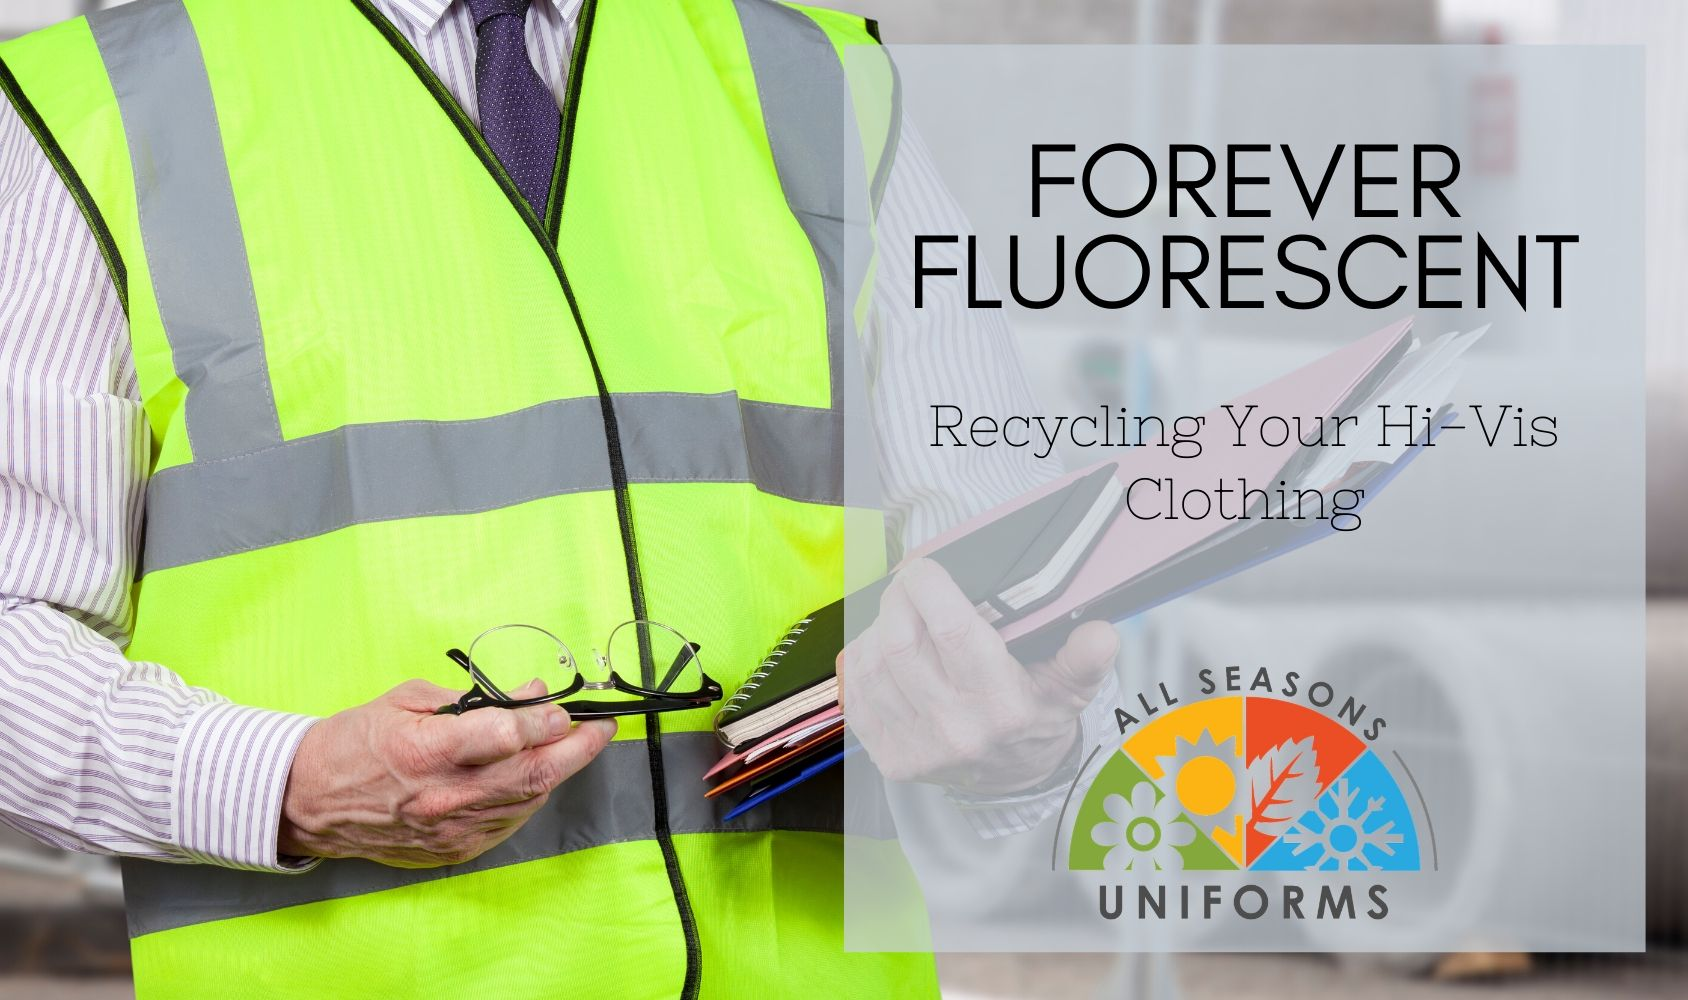 Forever Fluorescent – Recycling Your Hi-Vis Clothing